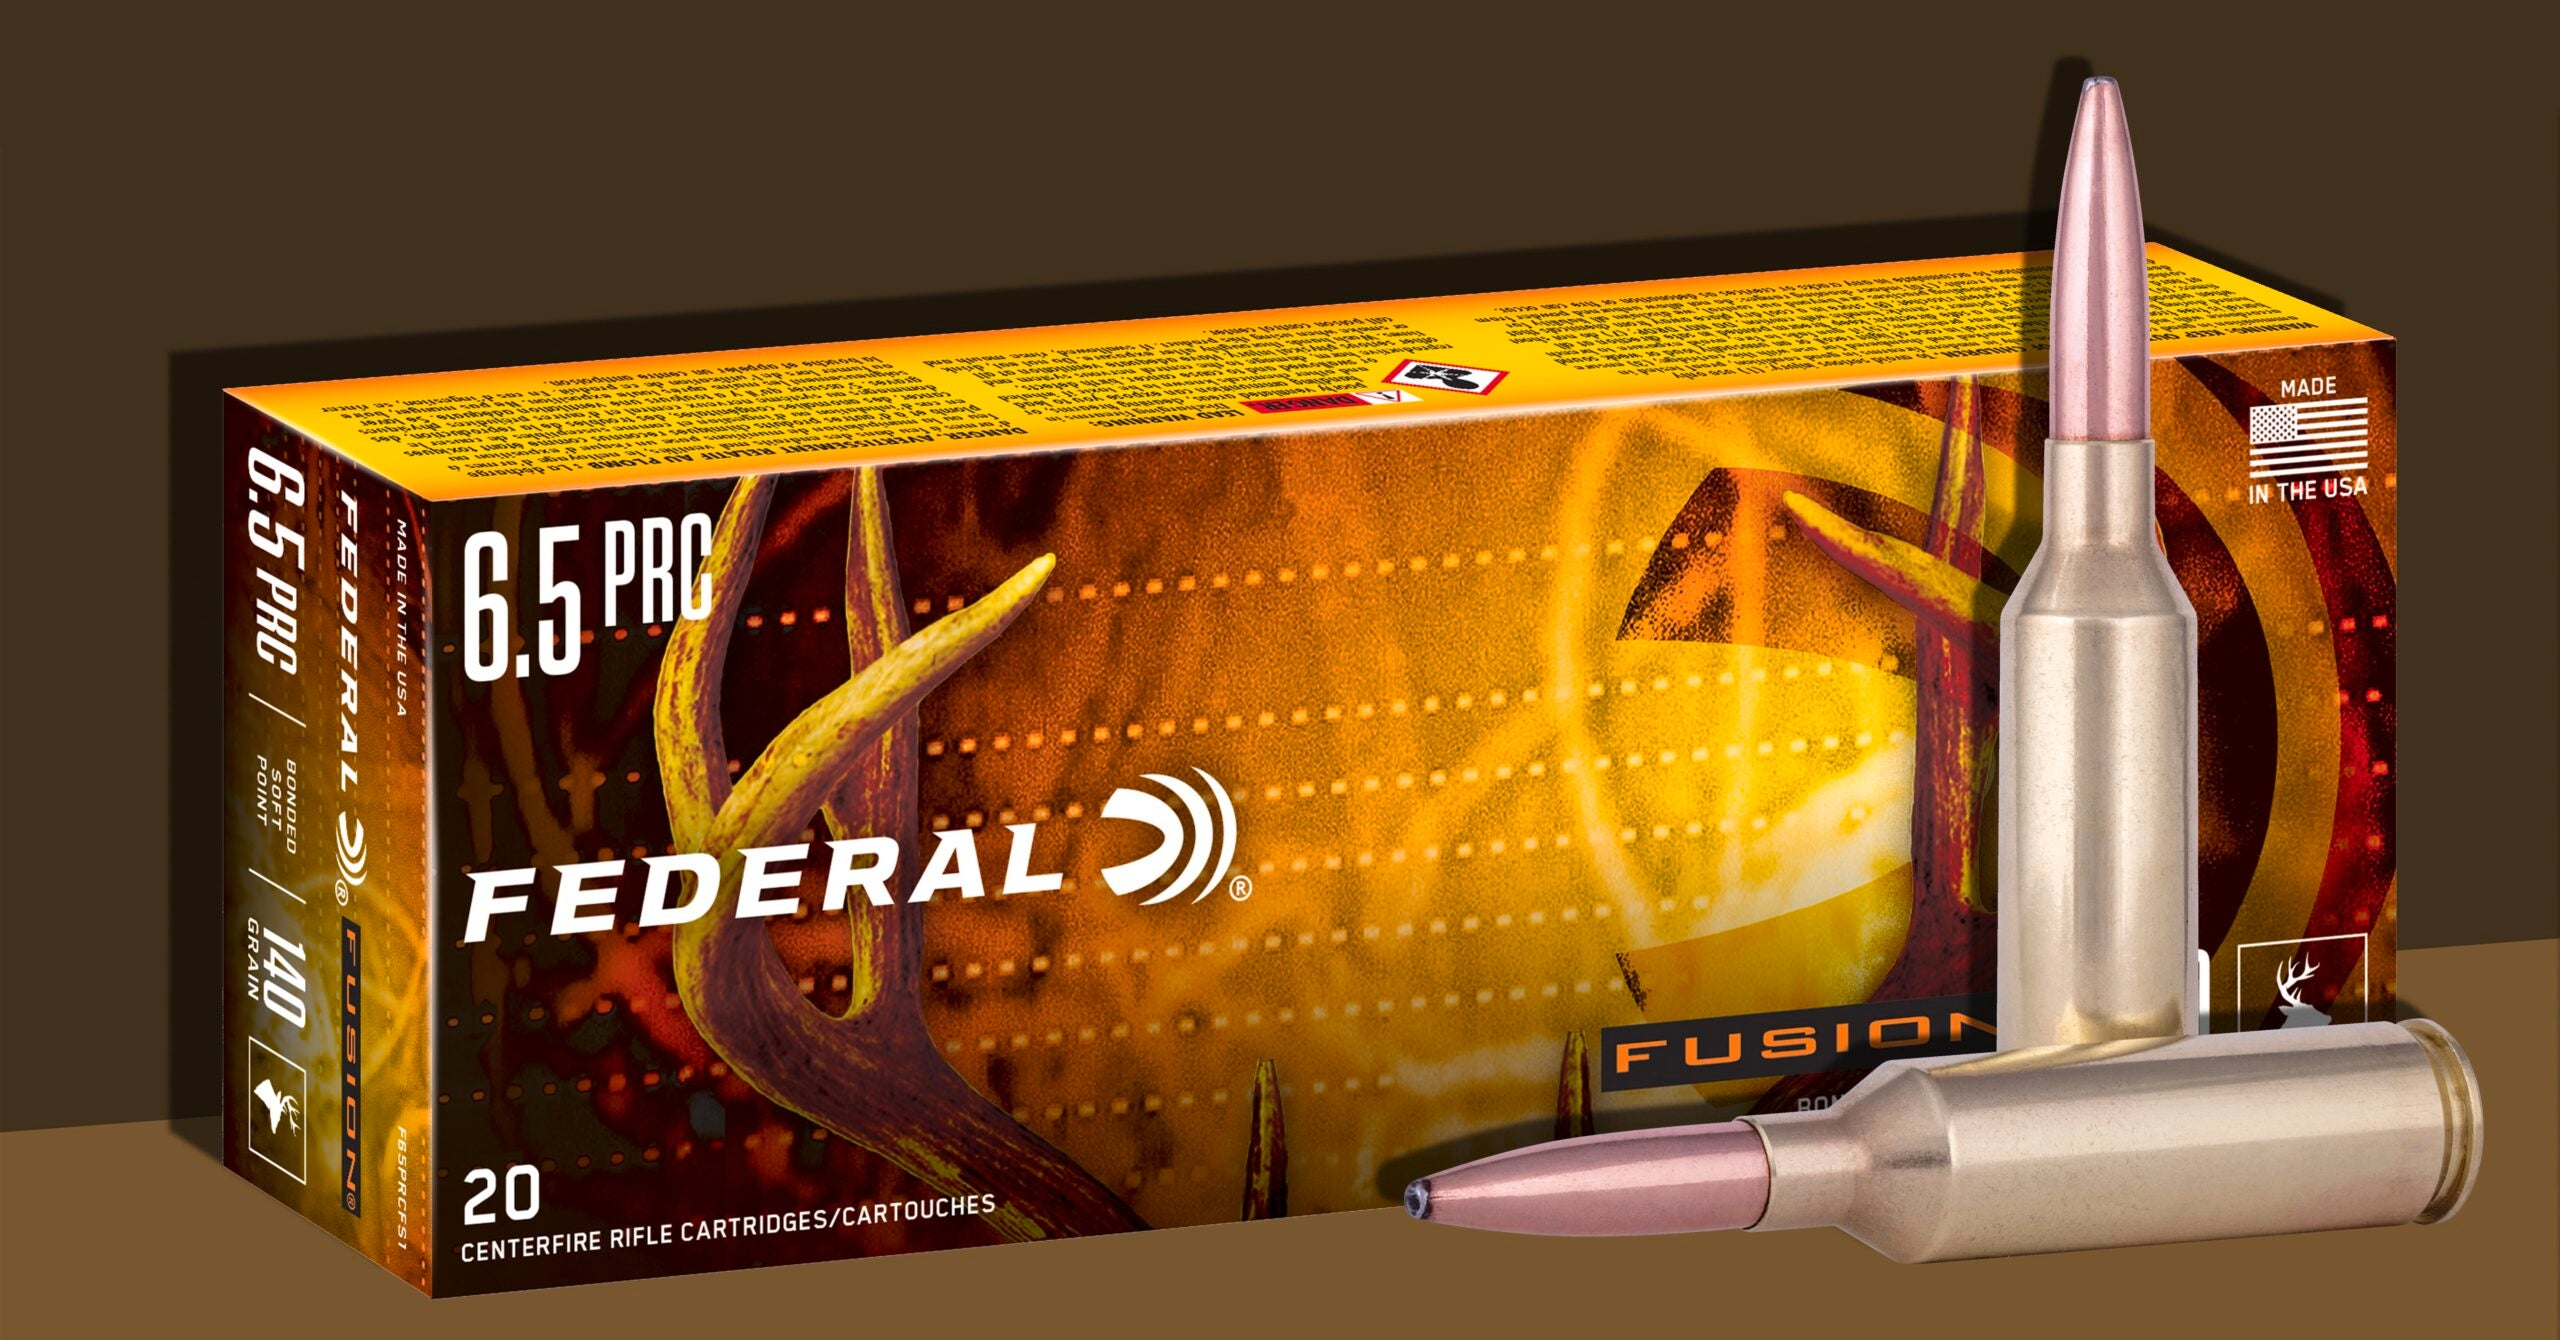 Federal Fusion big game rifle ammunition in the 6.5 PRC cartridge.